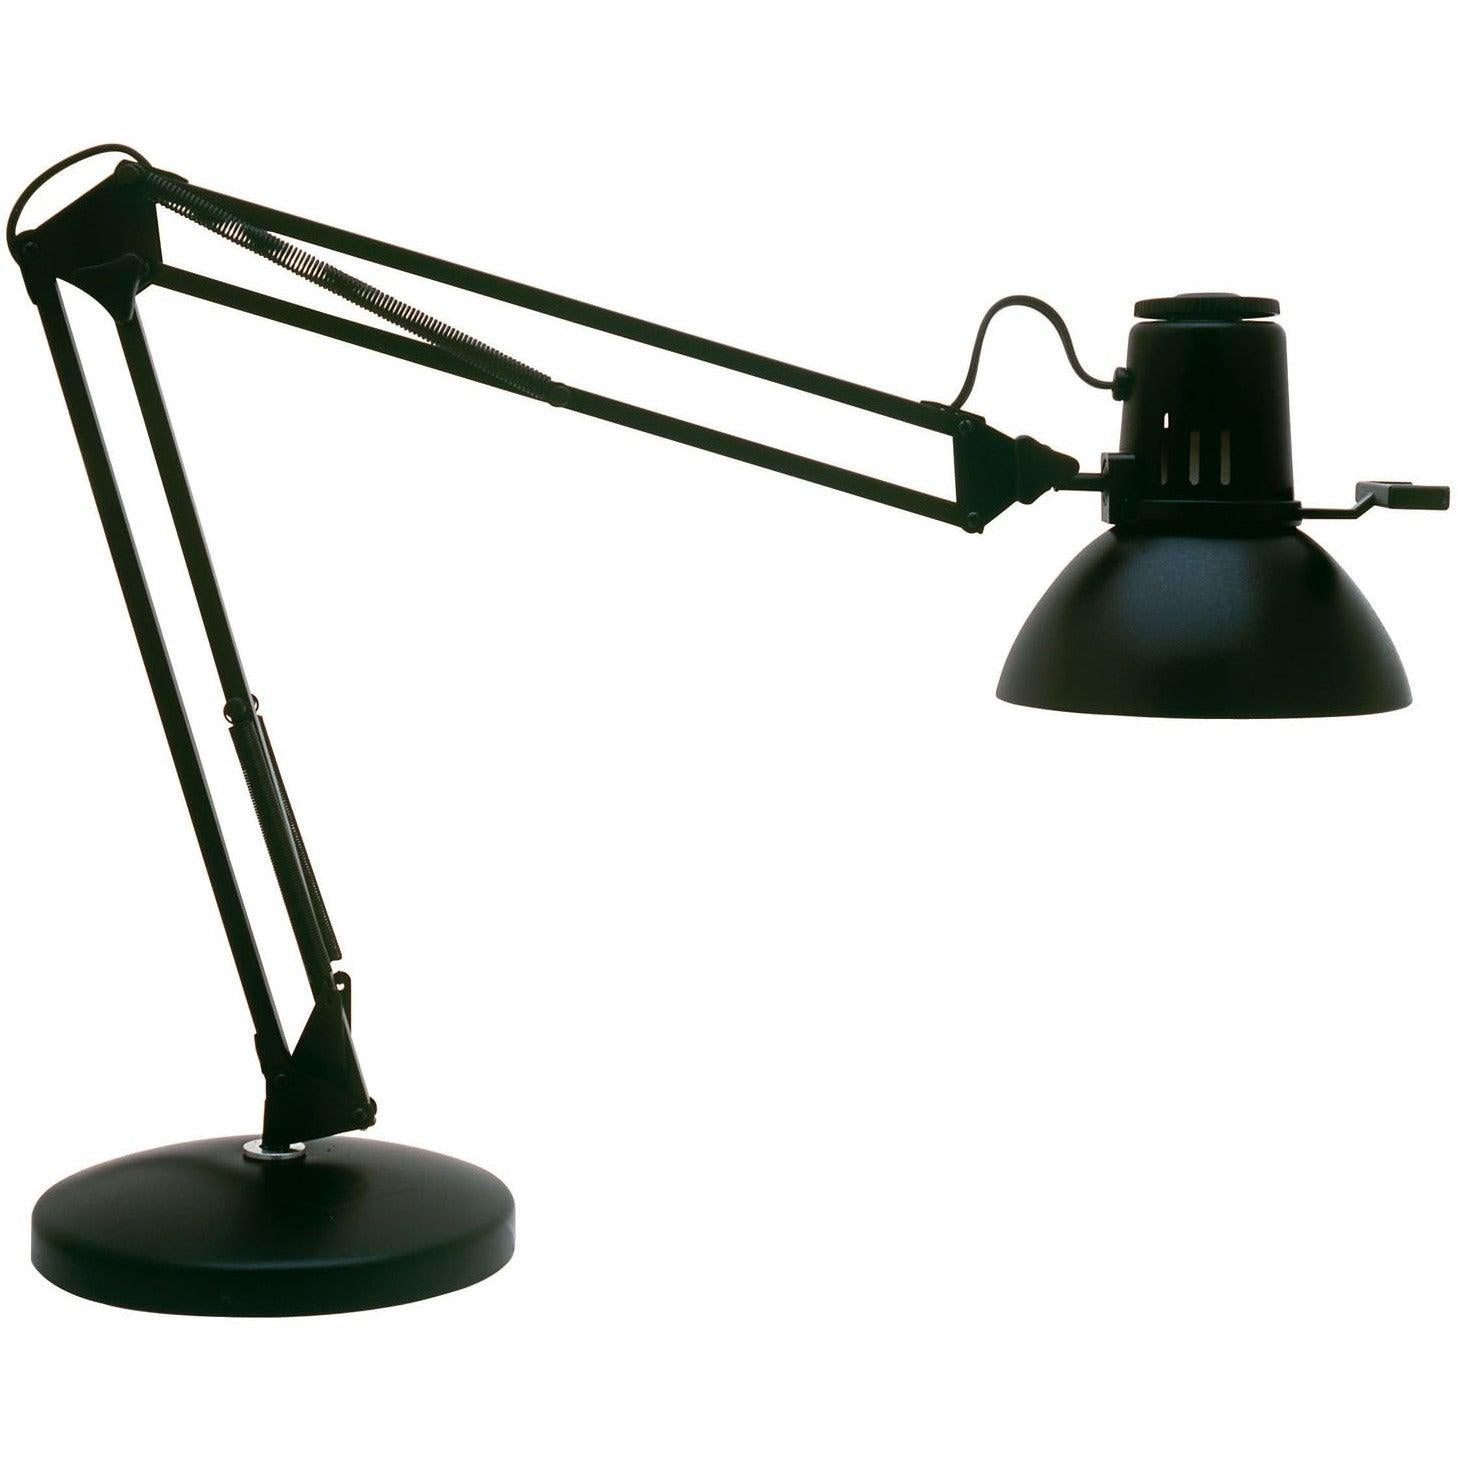 Dainolite Canada - REMIE-II-BK - One Light Table Lamp - Remie II - Black